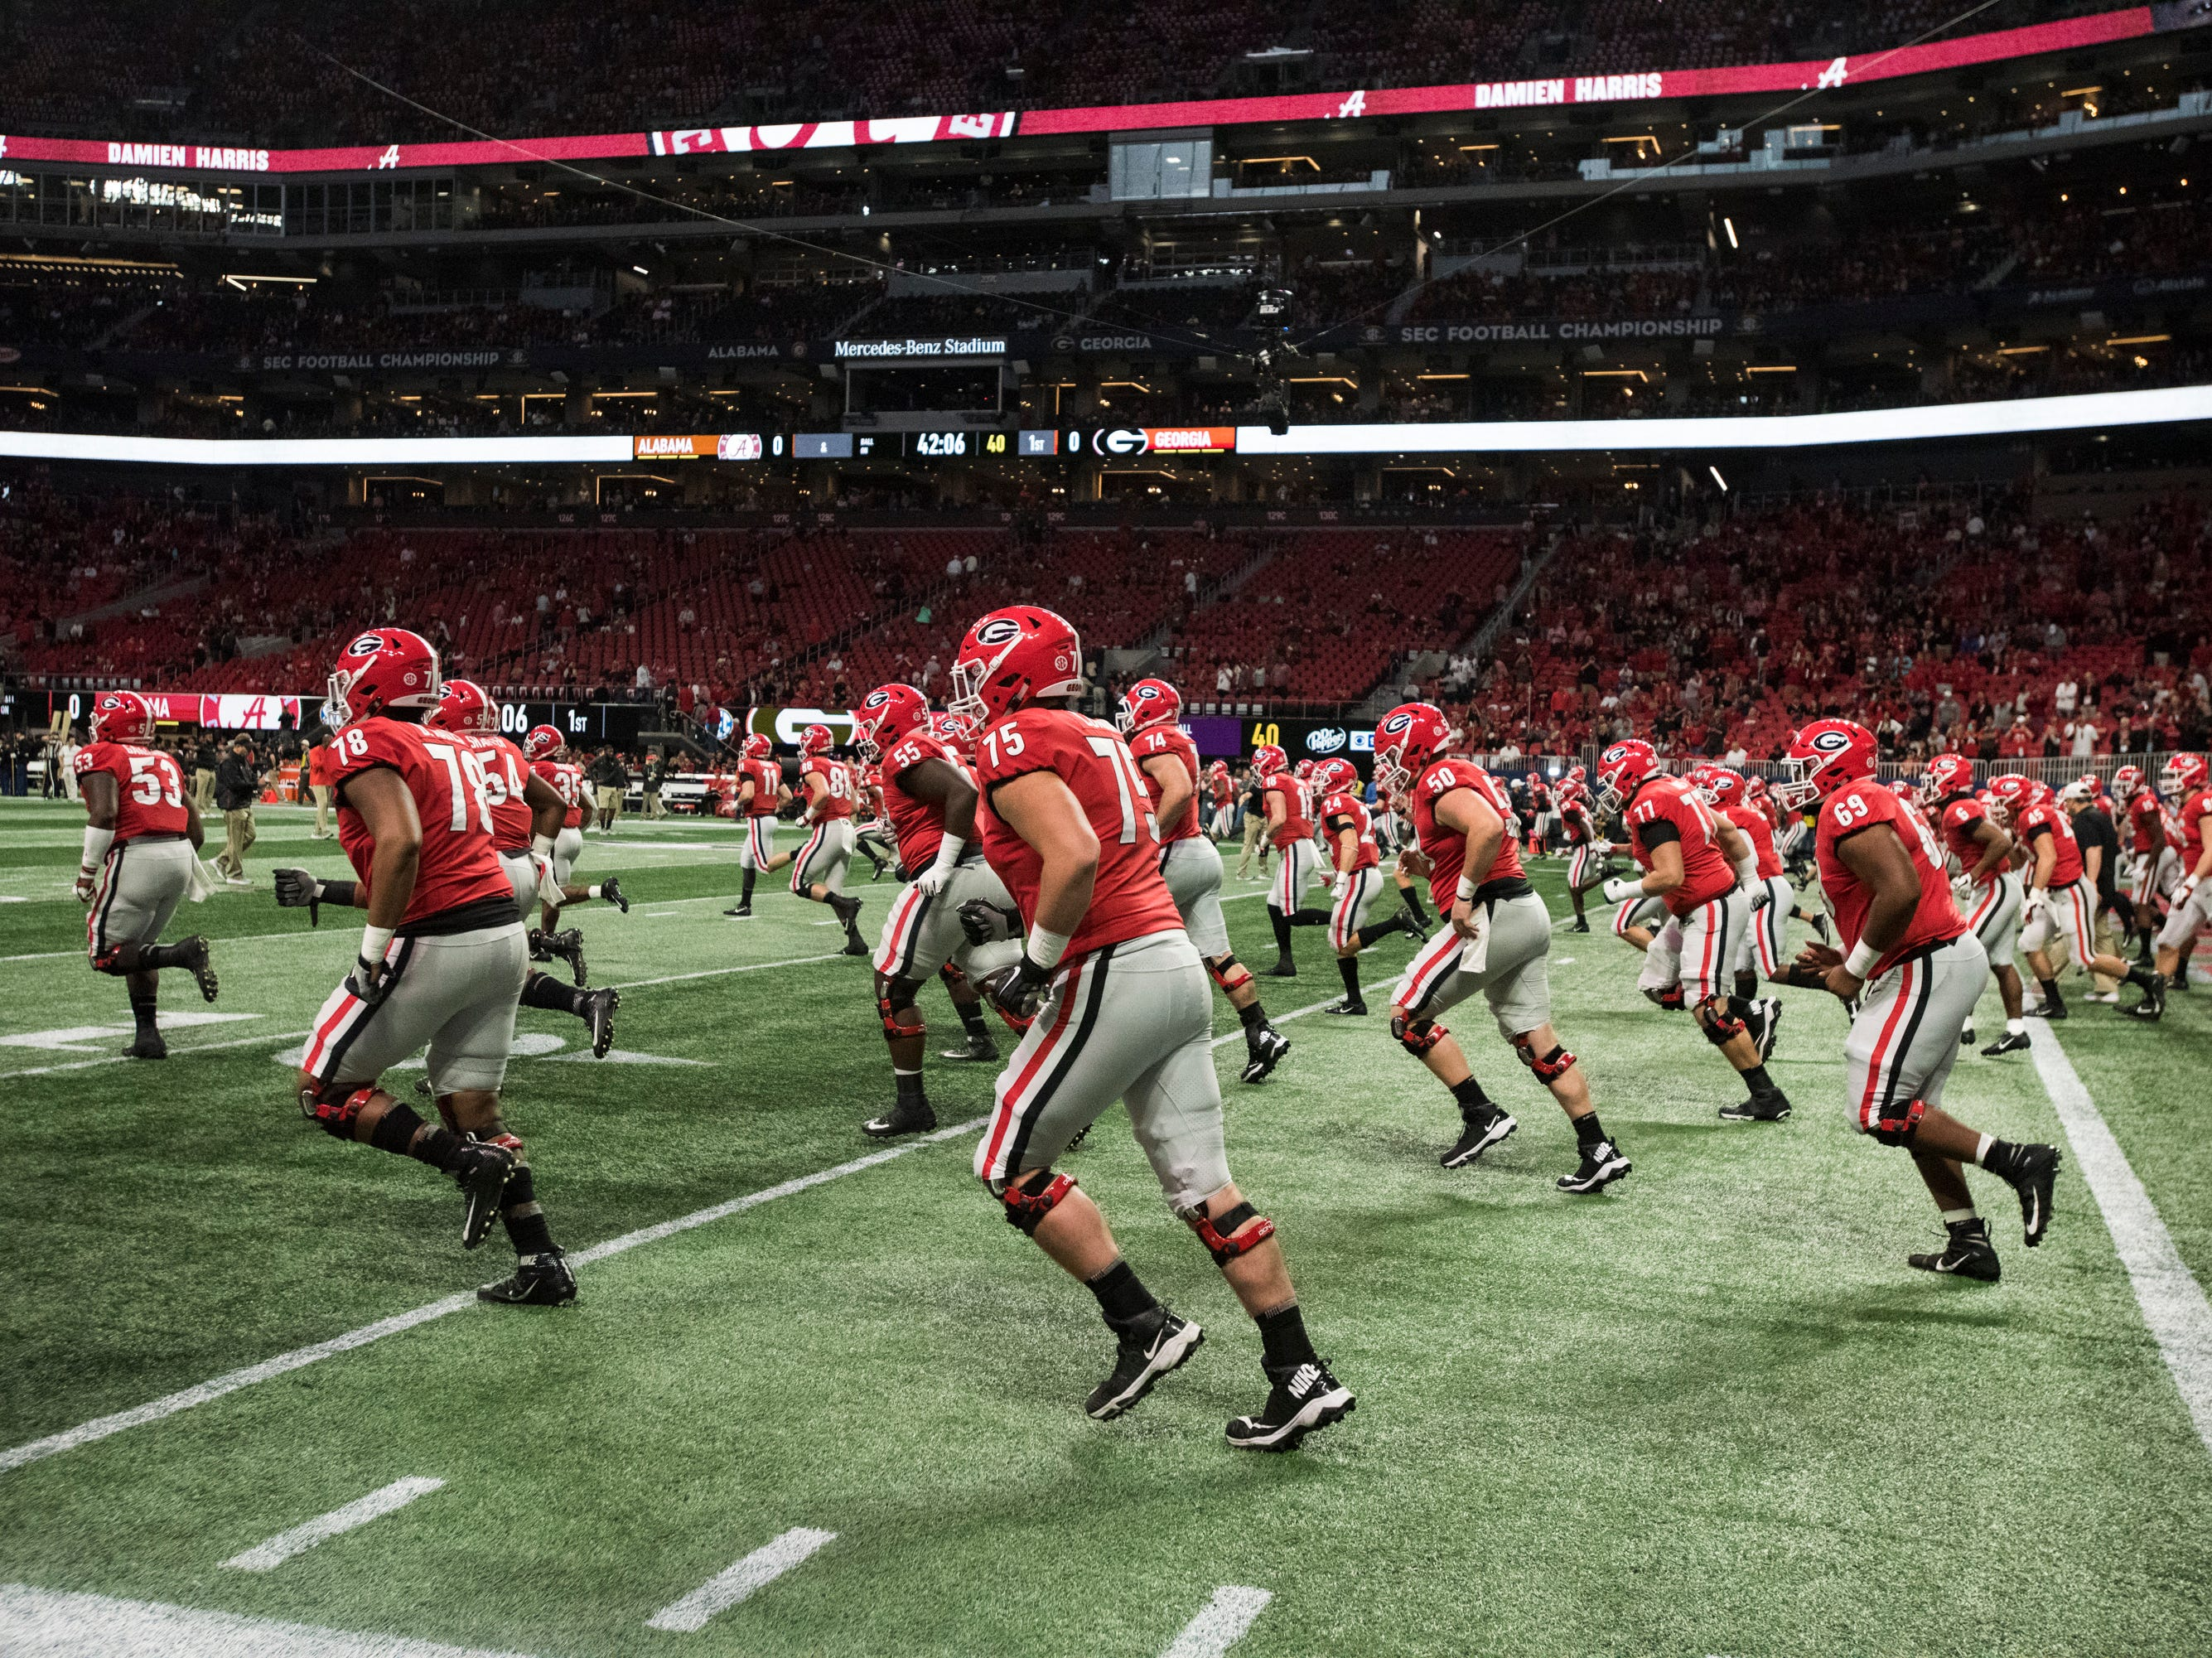 Georgia players warm up before the SEC Championship game at Mercedes-Benz Stadium in Atlanta, Ga., on Saturday Dec. 1, 2018.